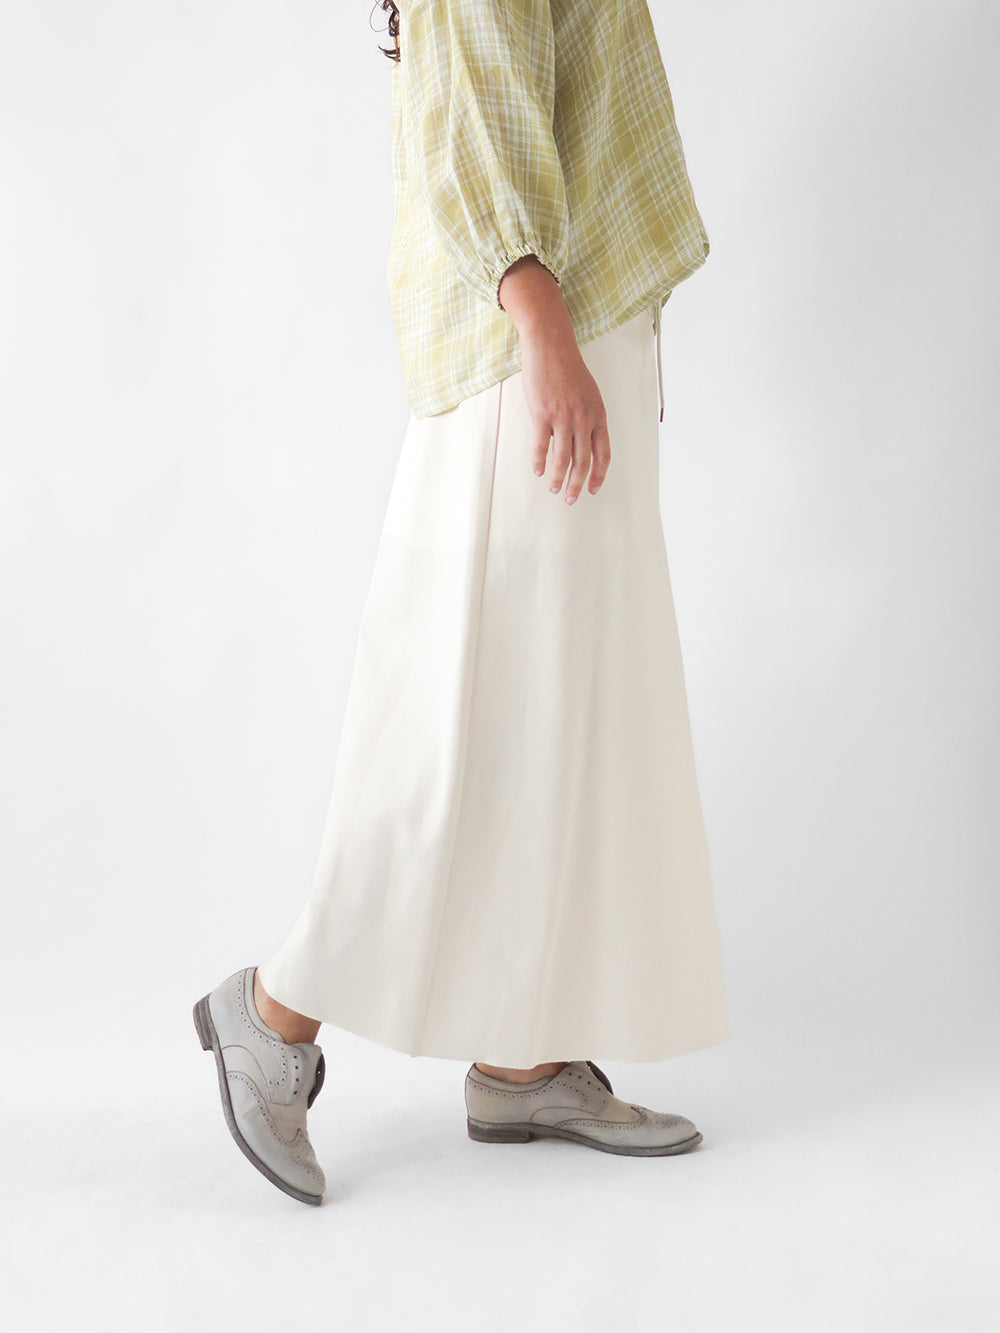 isabelle skirt in natural